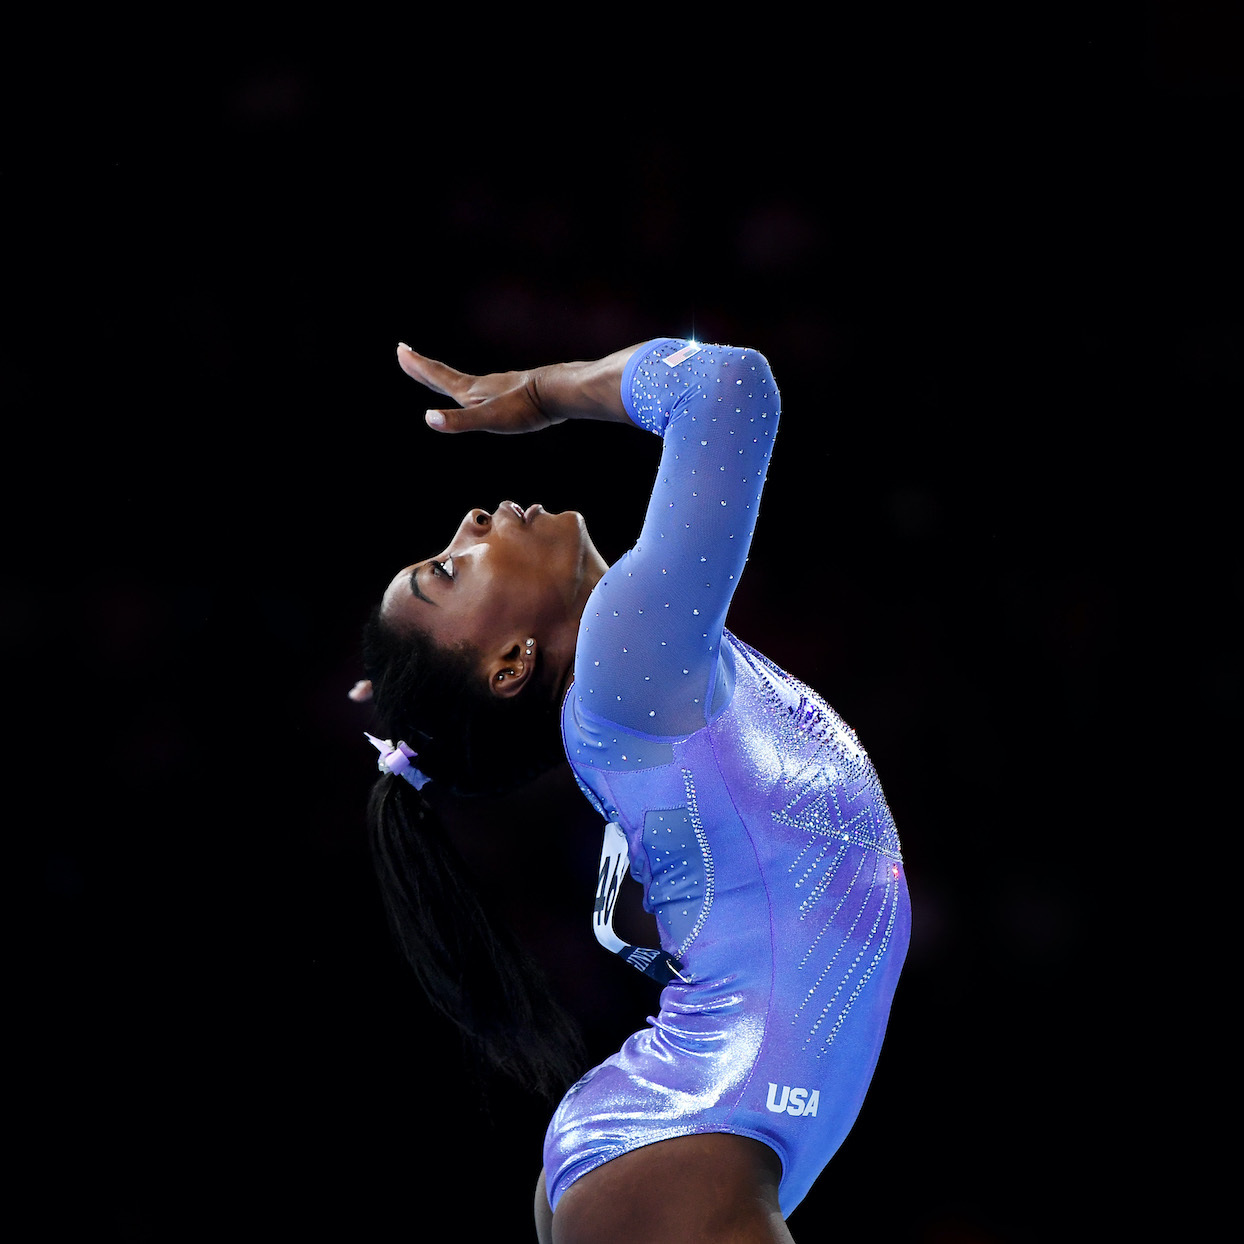 Simone Biles of USA competes on Floor during the Apparatus Finals on Day 10 of the FIG Artistic Gymnastics World Championships at Hanns Martin Schleyer Hall on October 13, 2019 in Stuttgart, Germany